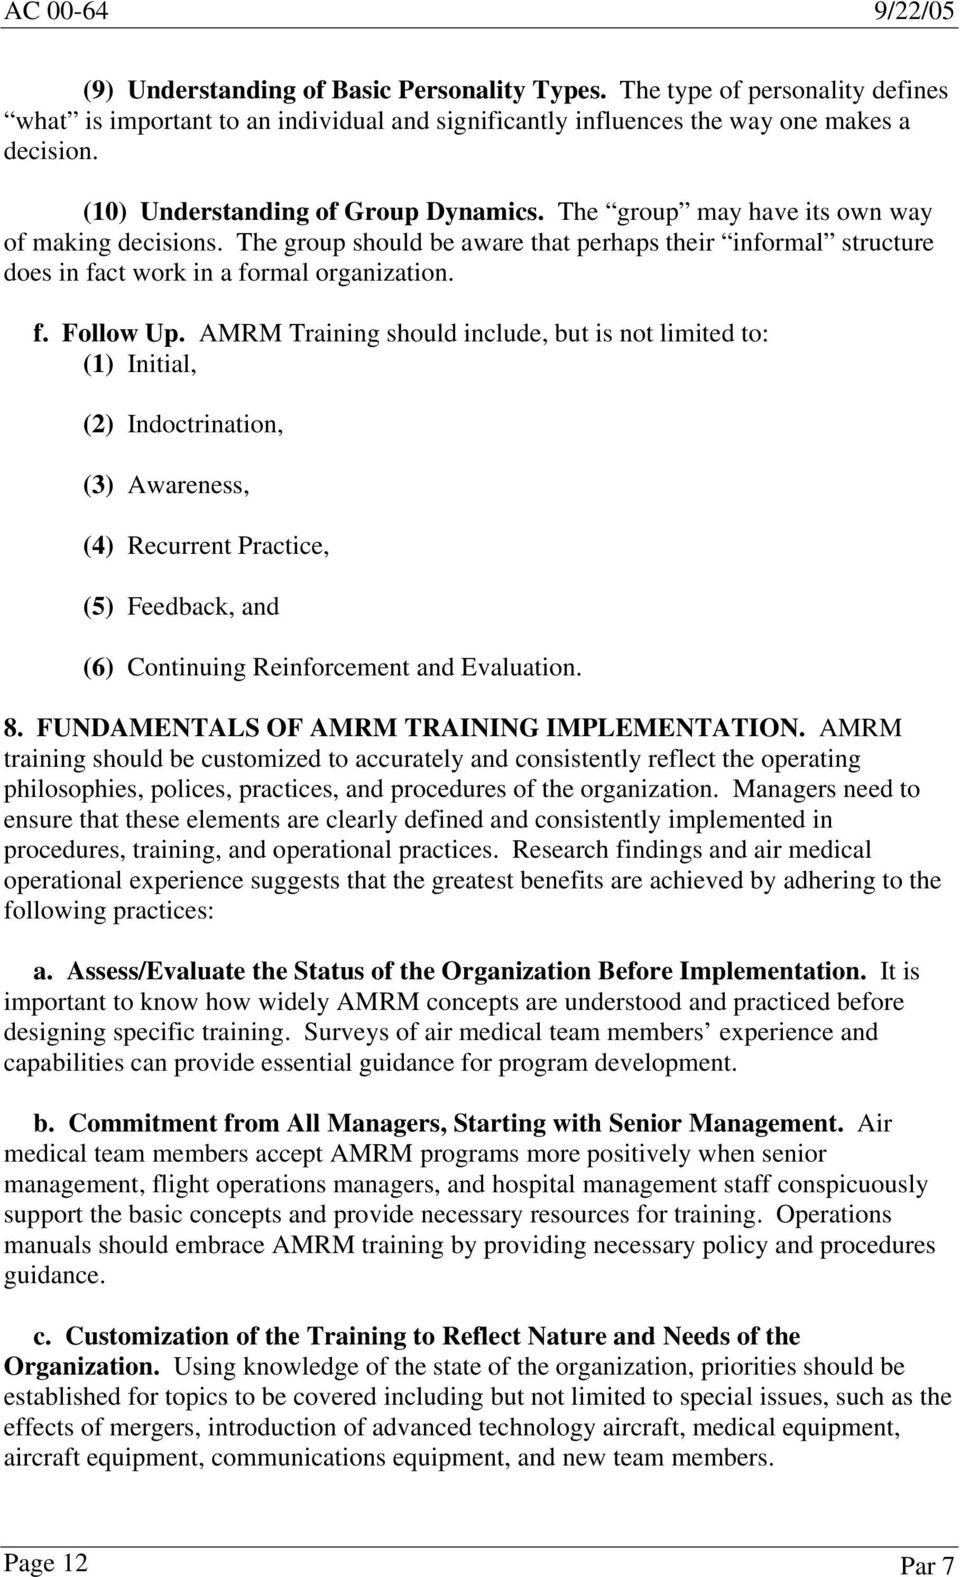 AMRM Training should include, but is not limited to: (1) Initial, (2) Indoctrination, (3) Awareness, (4) Recurrent Practice, (5) Feedback, and (6) Continuing Reinforcement and Evaluation. 8.